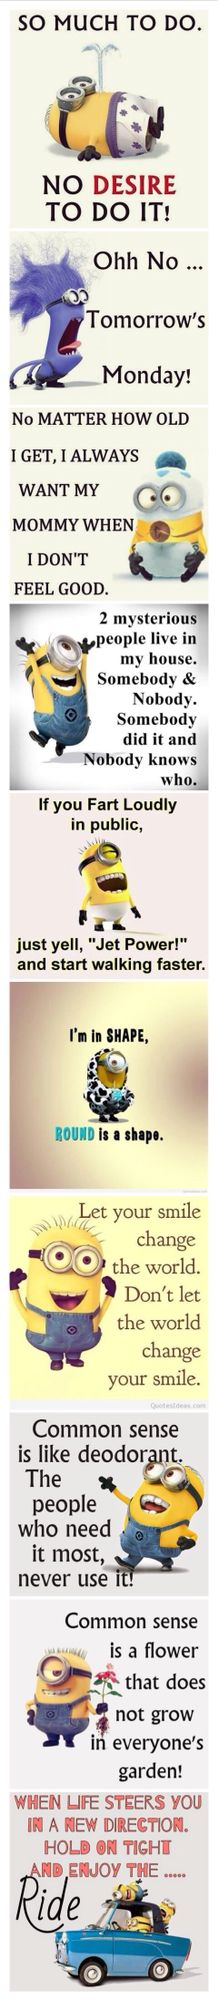 Minion funnies #2